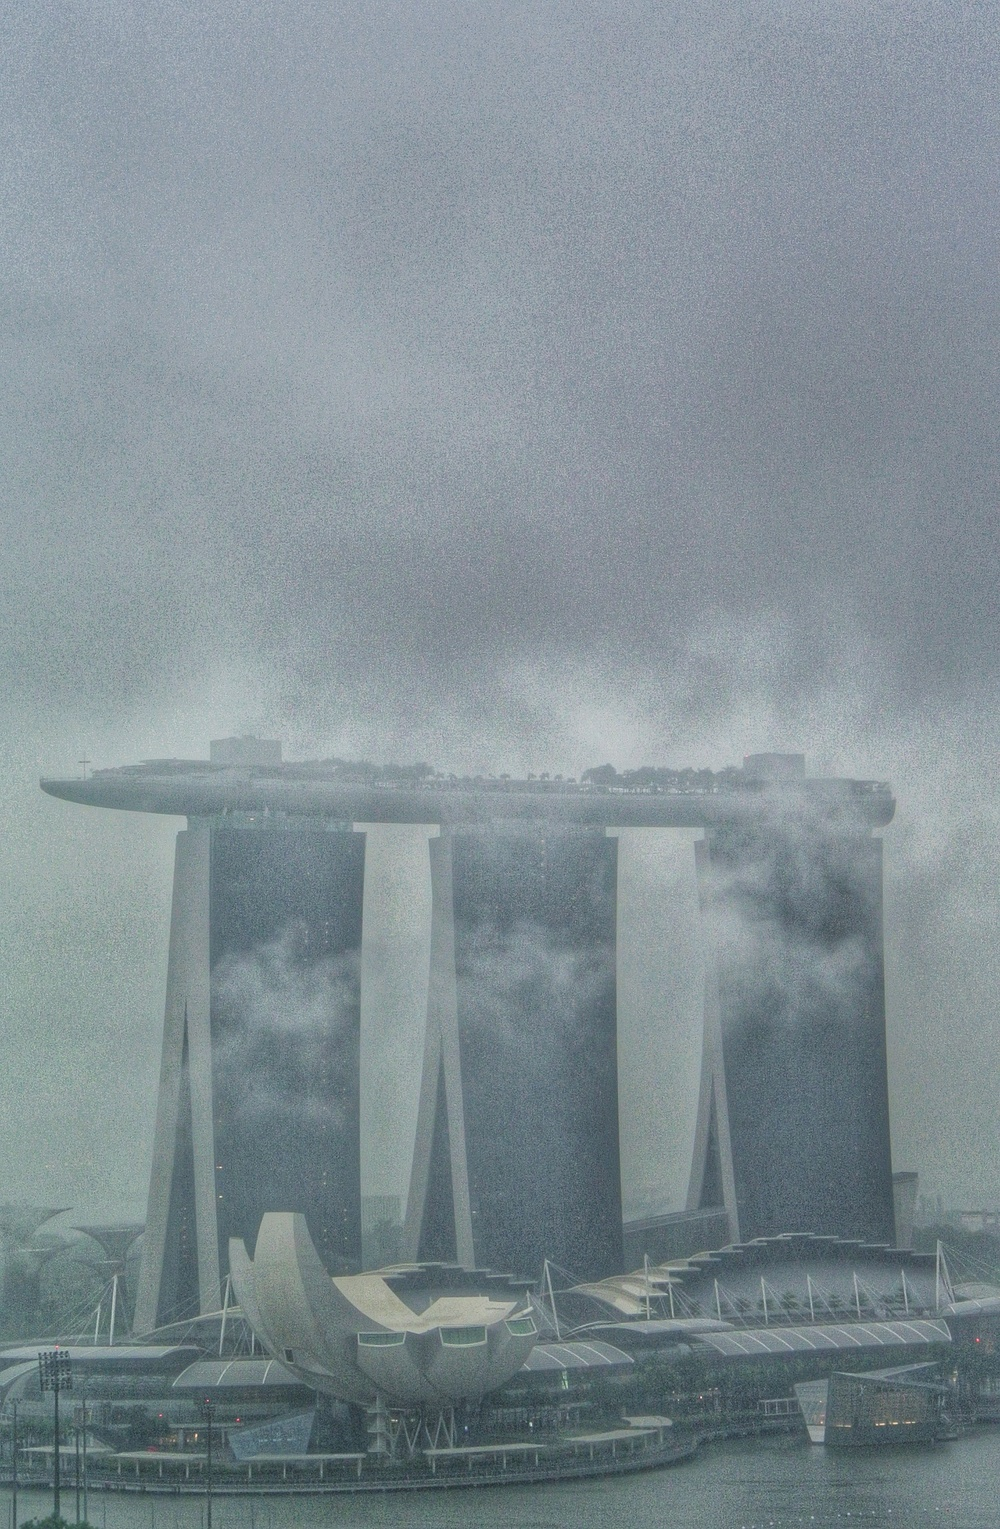 Marina Bay Sands 8th Dec